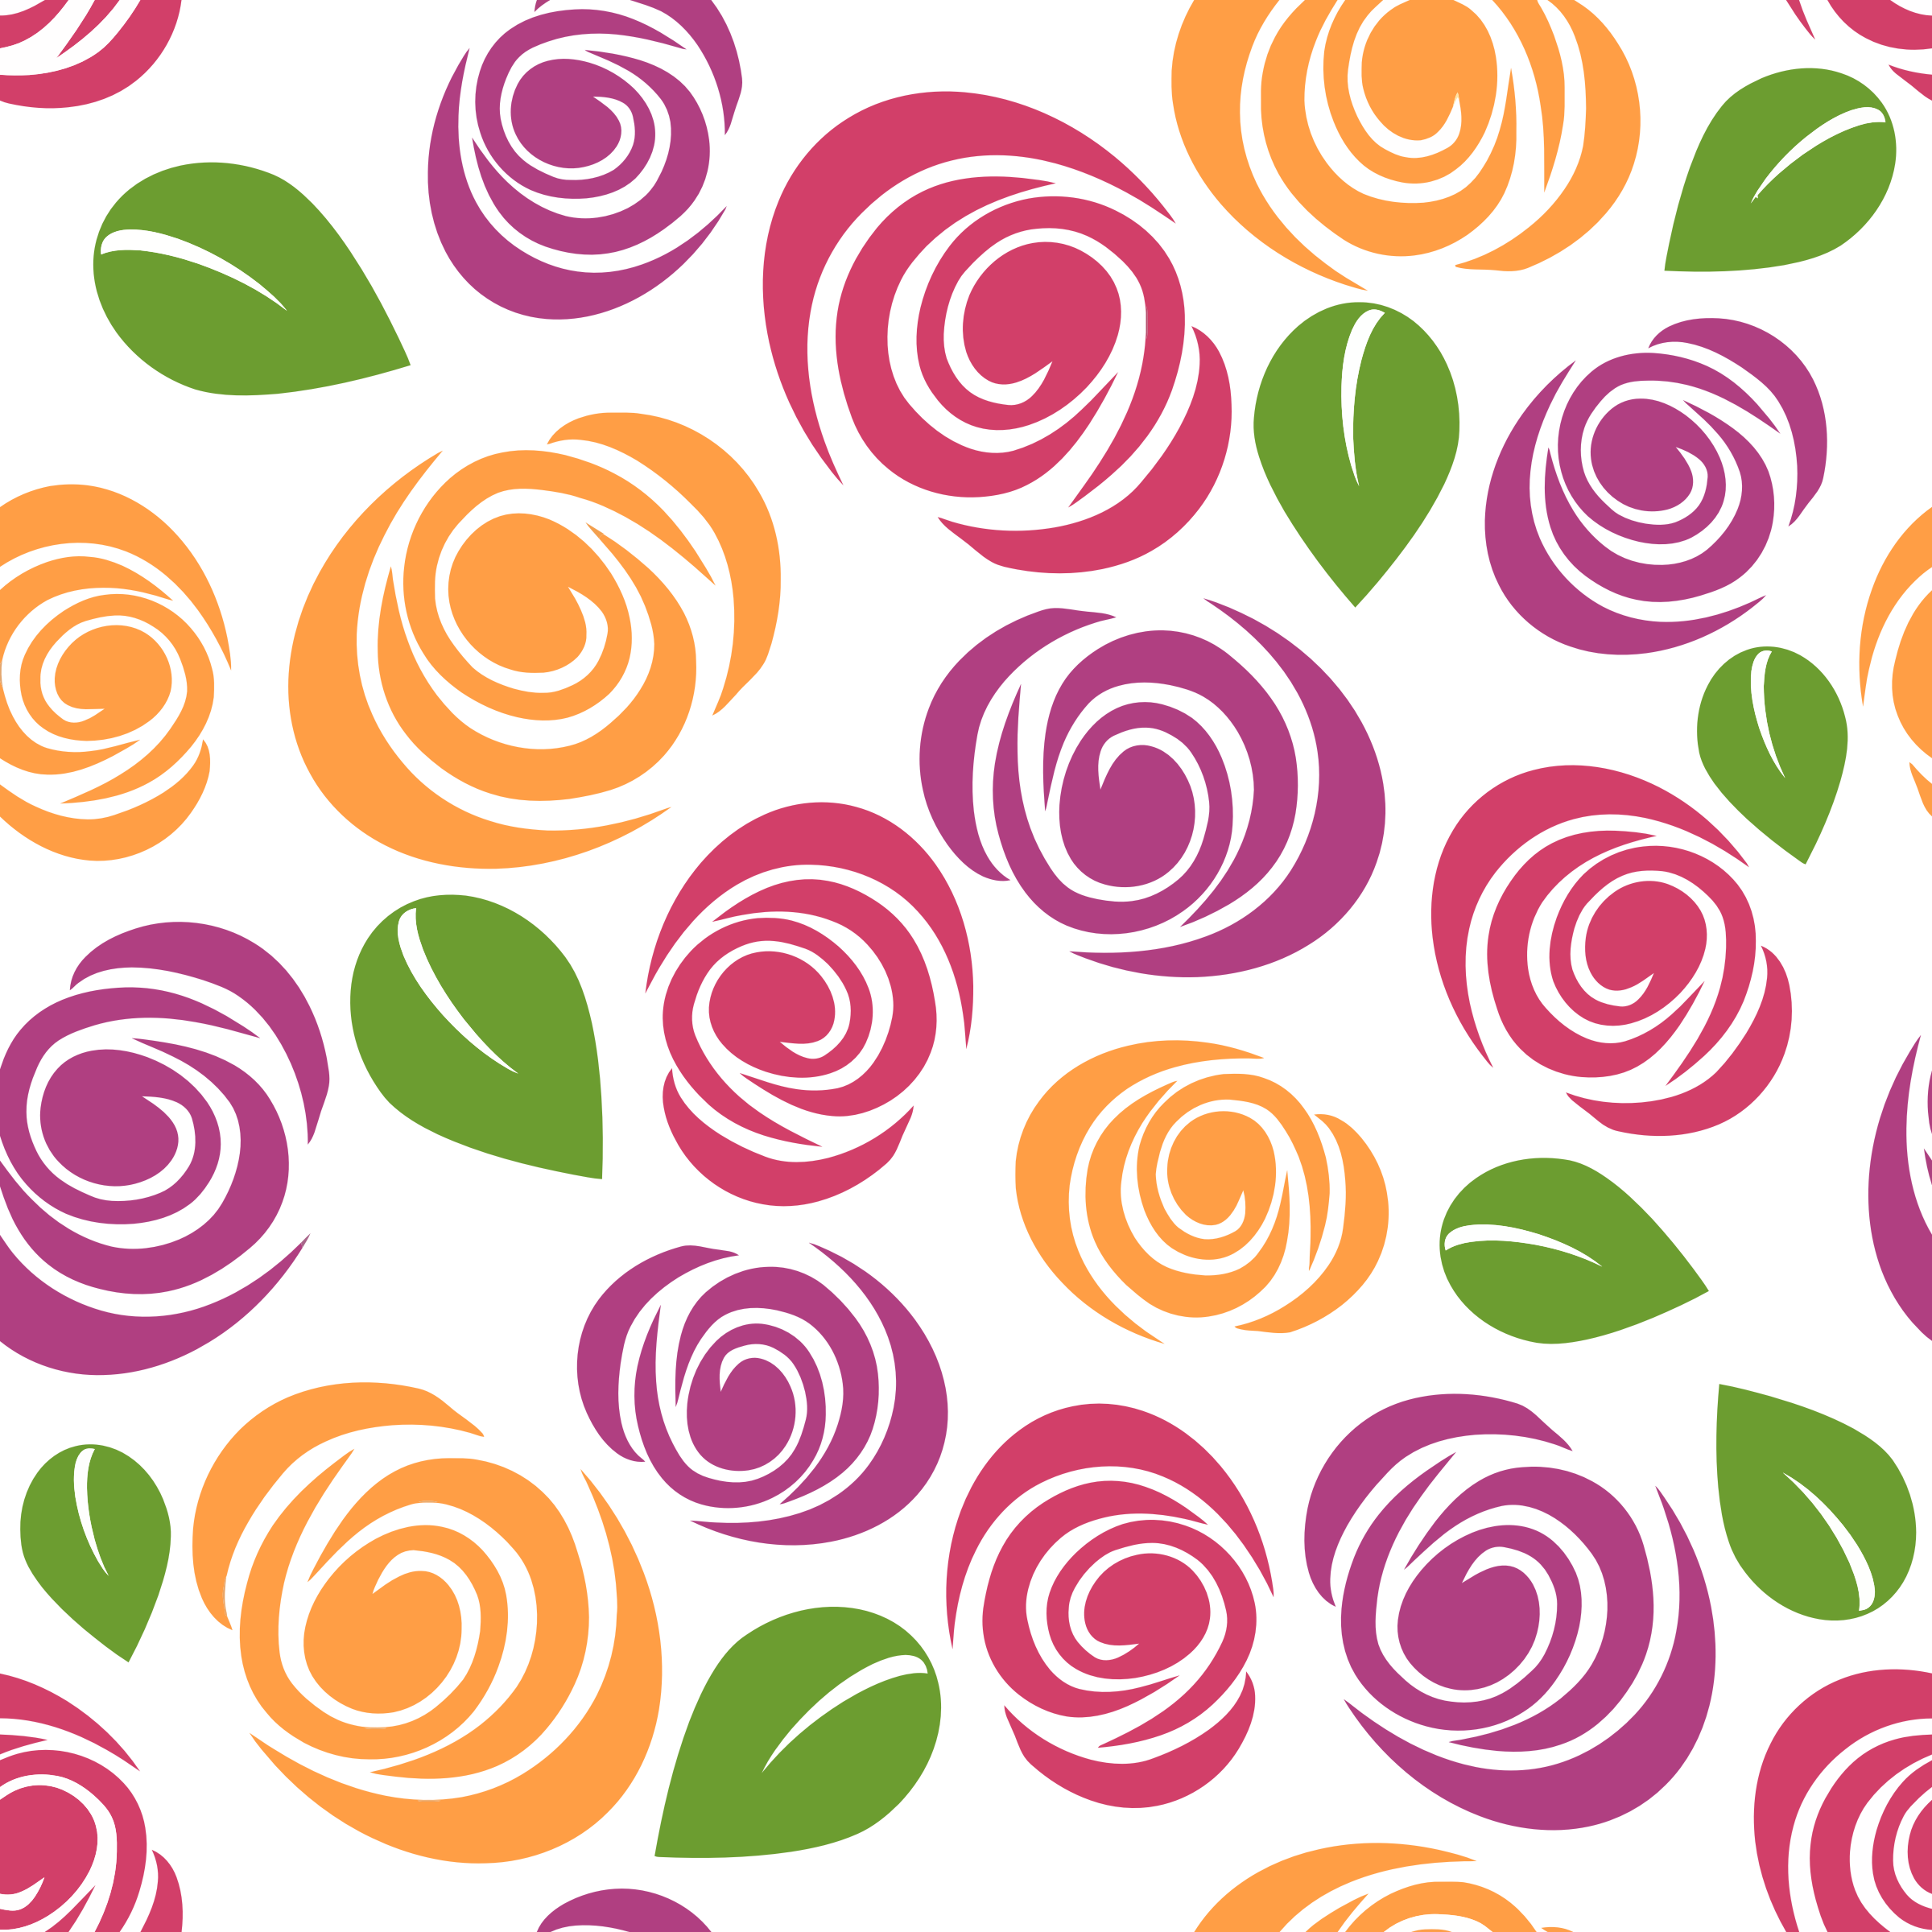 Colorful Floral Pattern Background 8 by GDJ